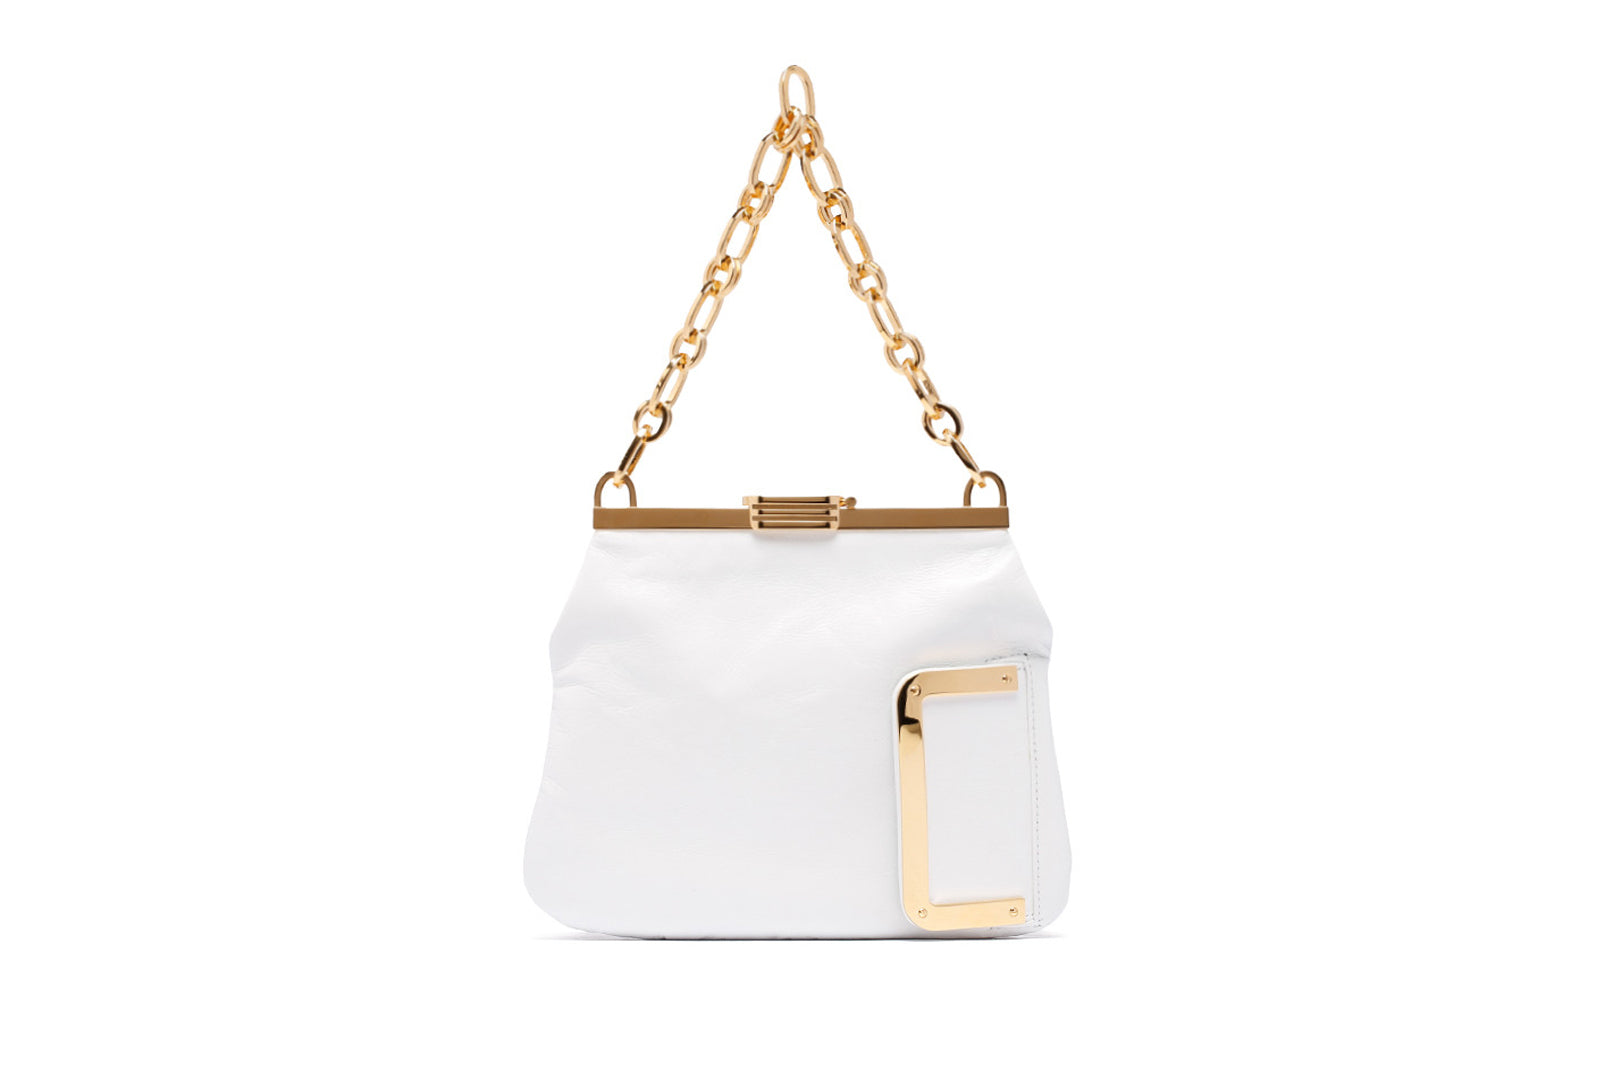 5 AM Clutch in White Calfskin Leather with 24k Gold Dipped Hardware